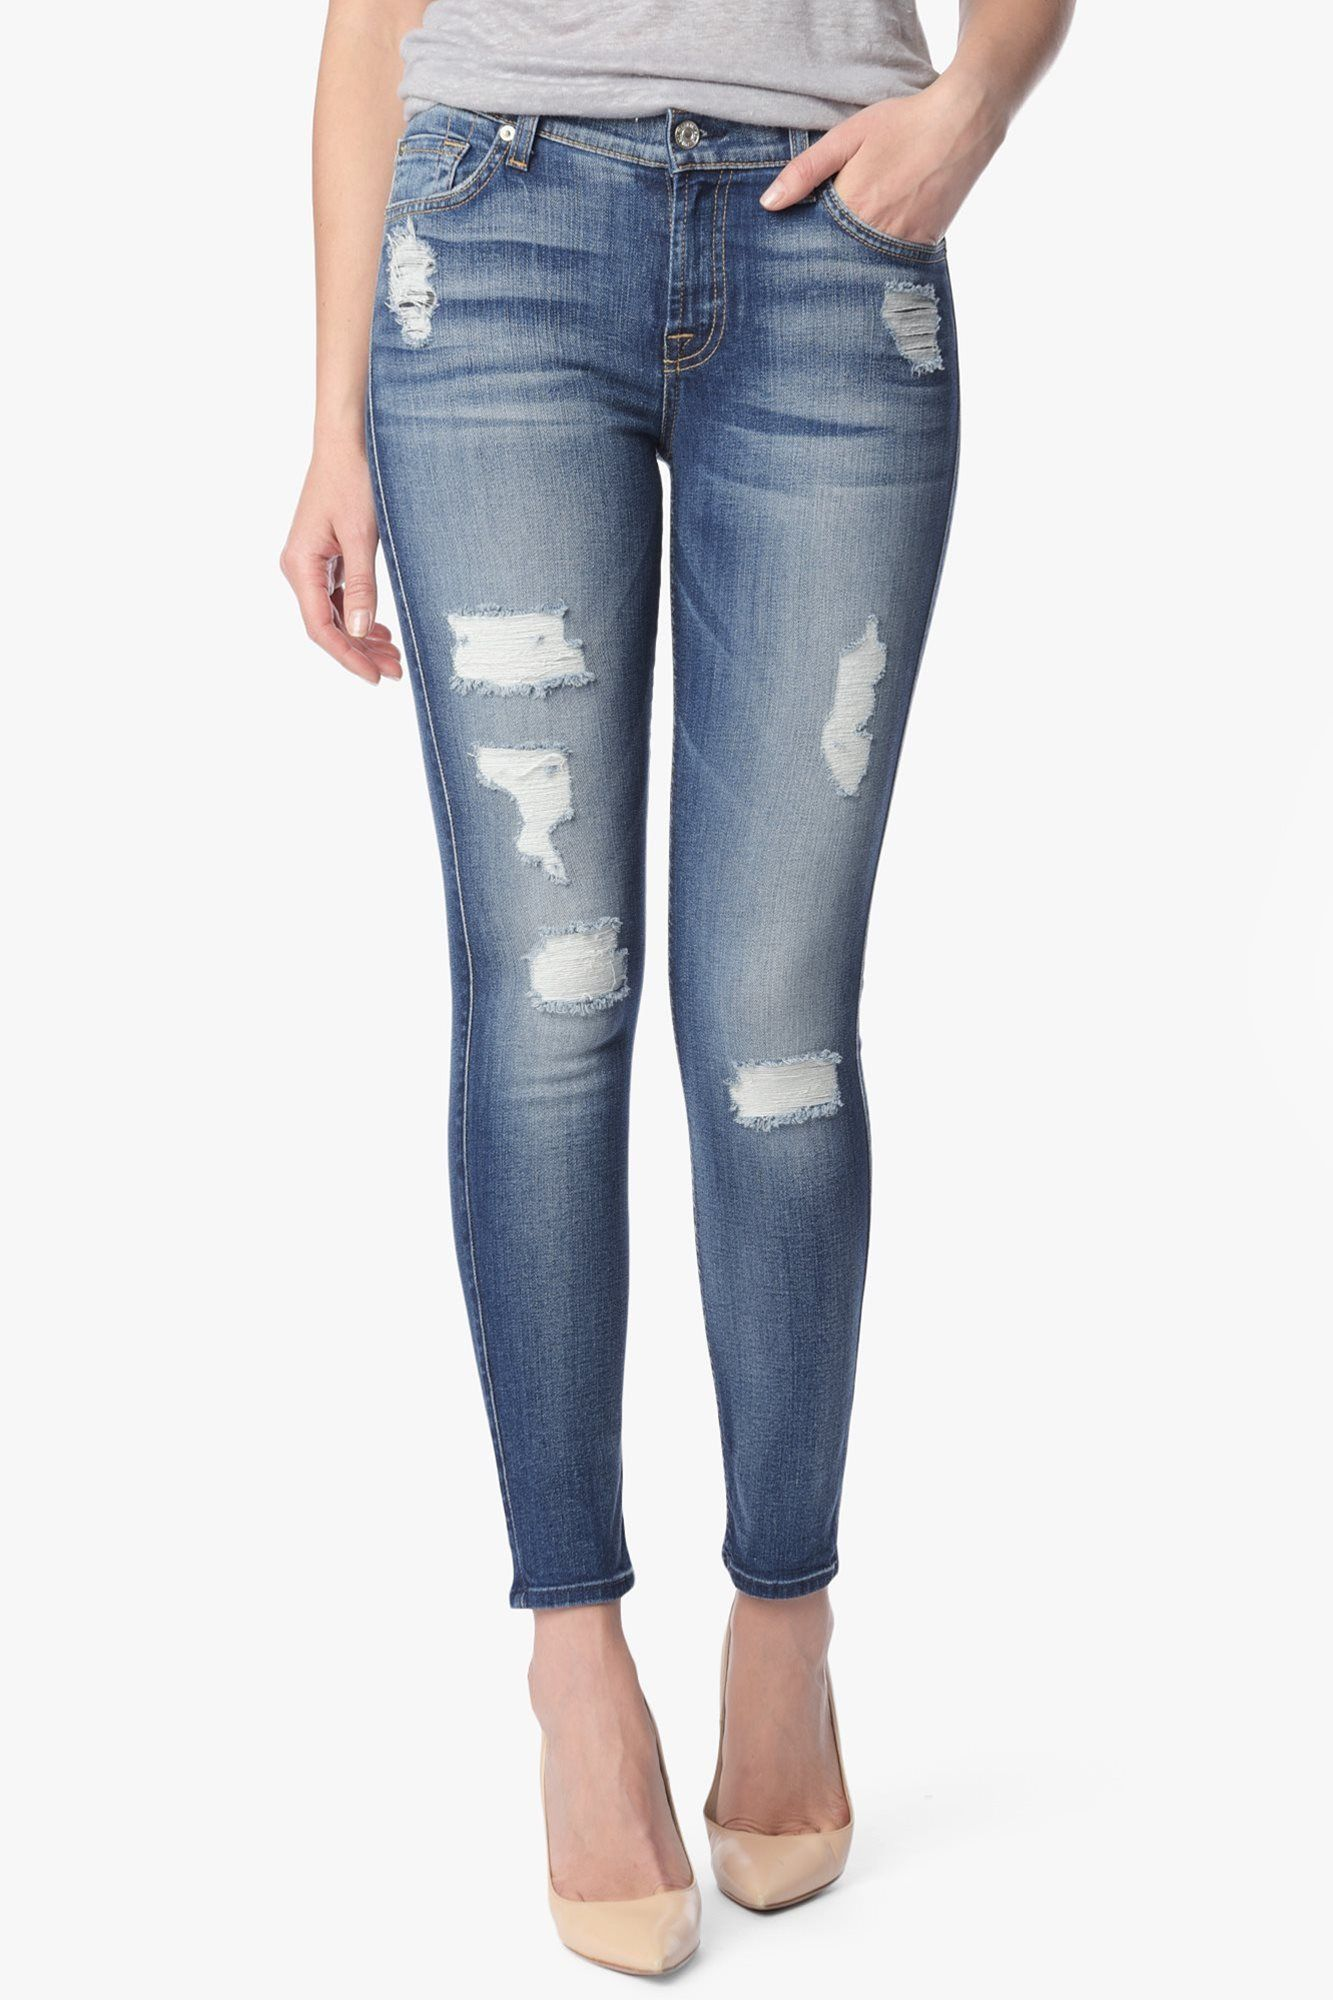 36a870627a 7 For All Mankind Ankle Skinny With Destroy in Distressed Authentic Light